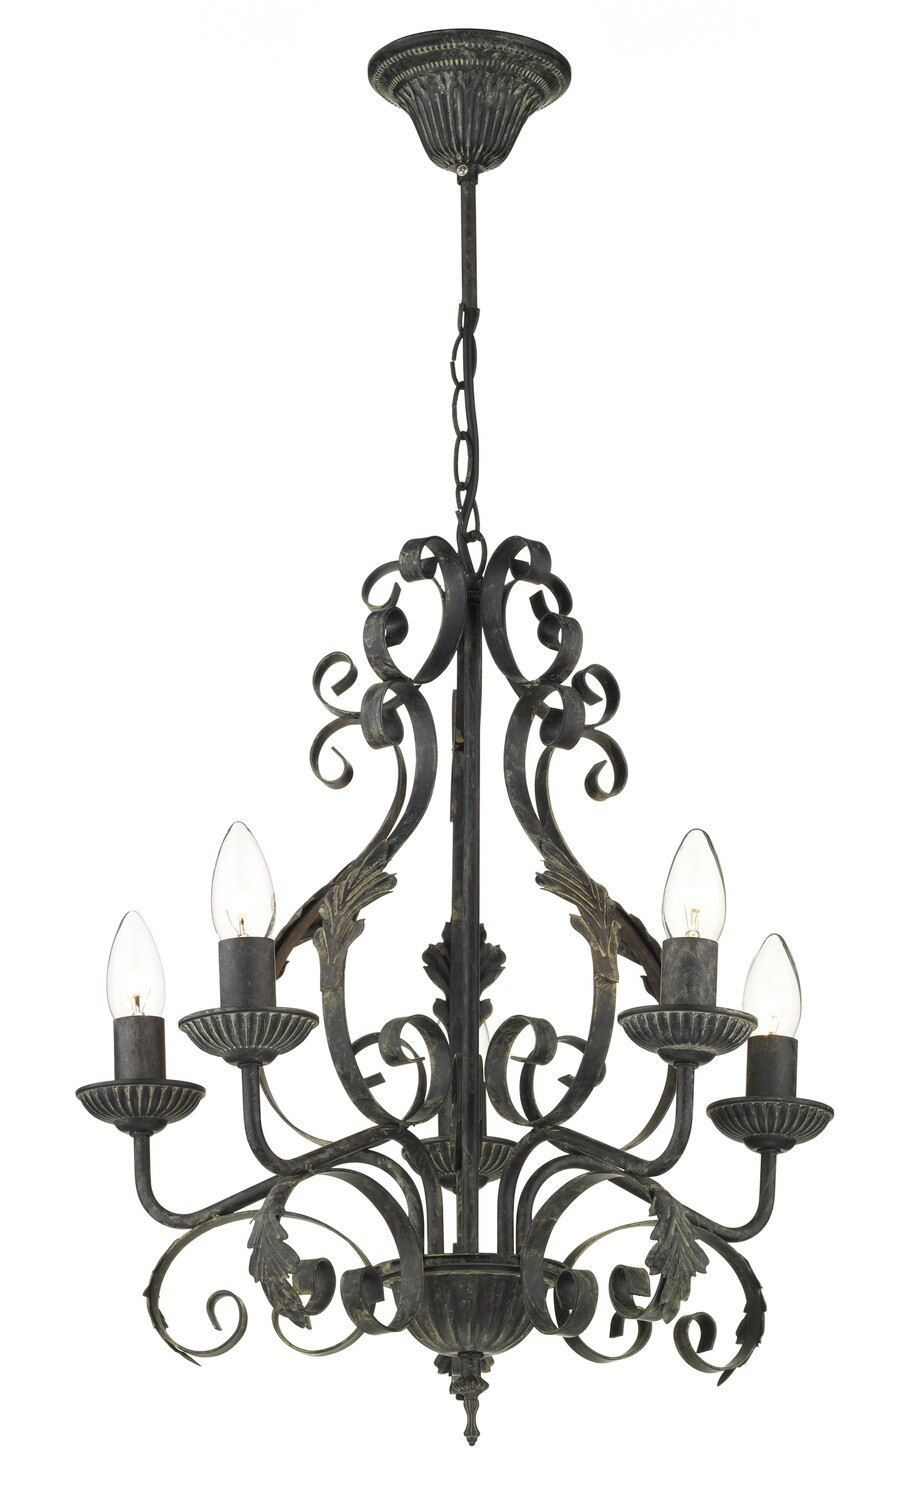 DAR Victoria Pendant 5 Light 5XE14 Candle/Black